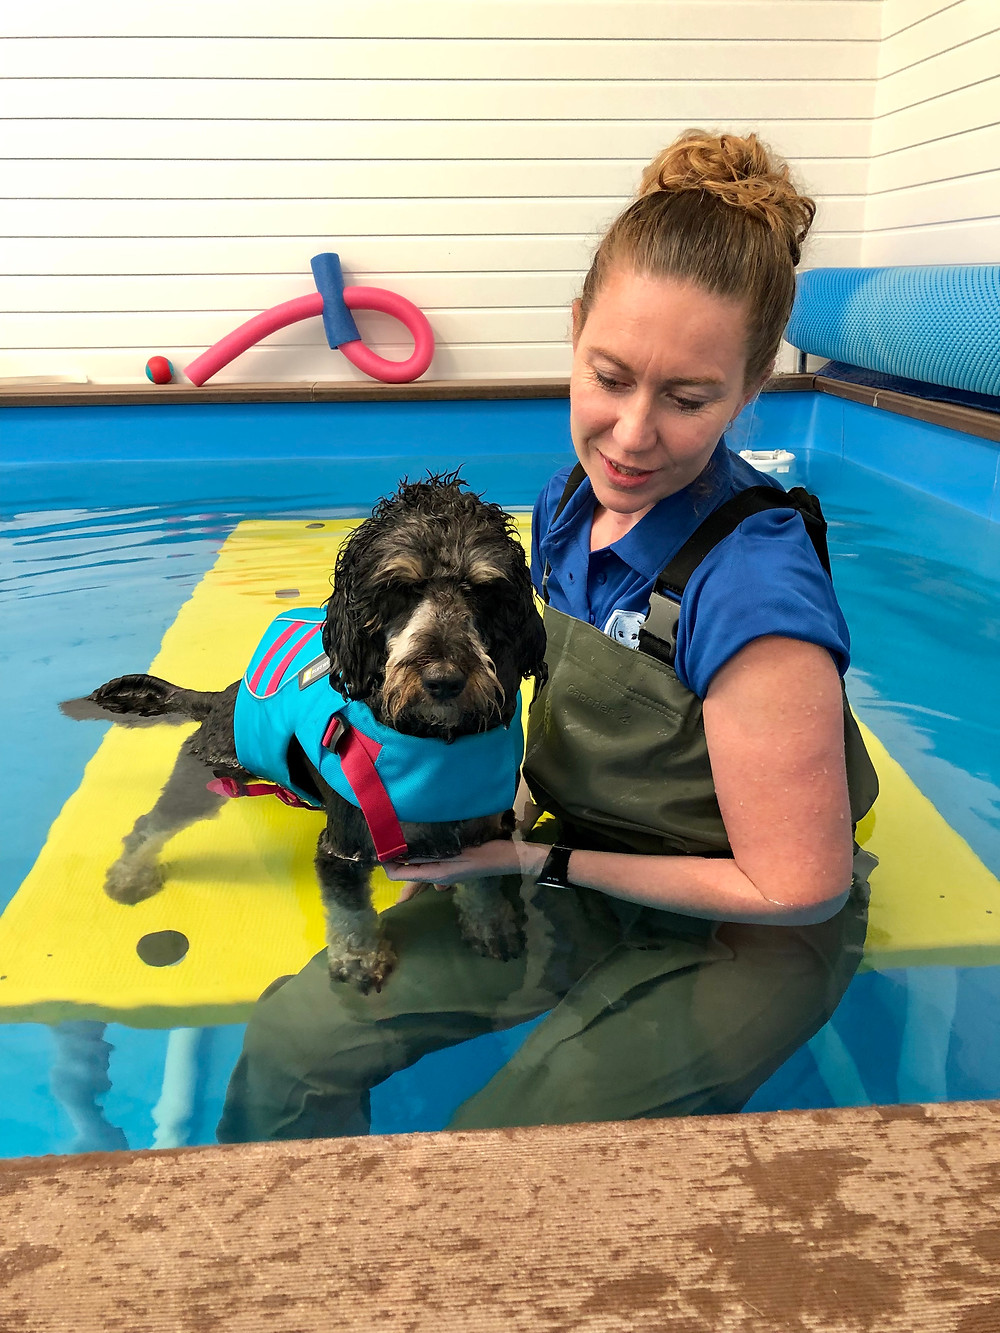 Hydrotherapist cuddling dog wearing a life jacket, in a pool.